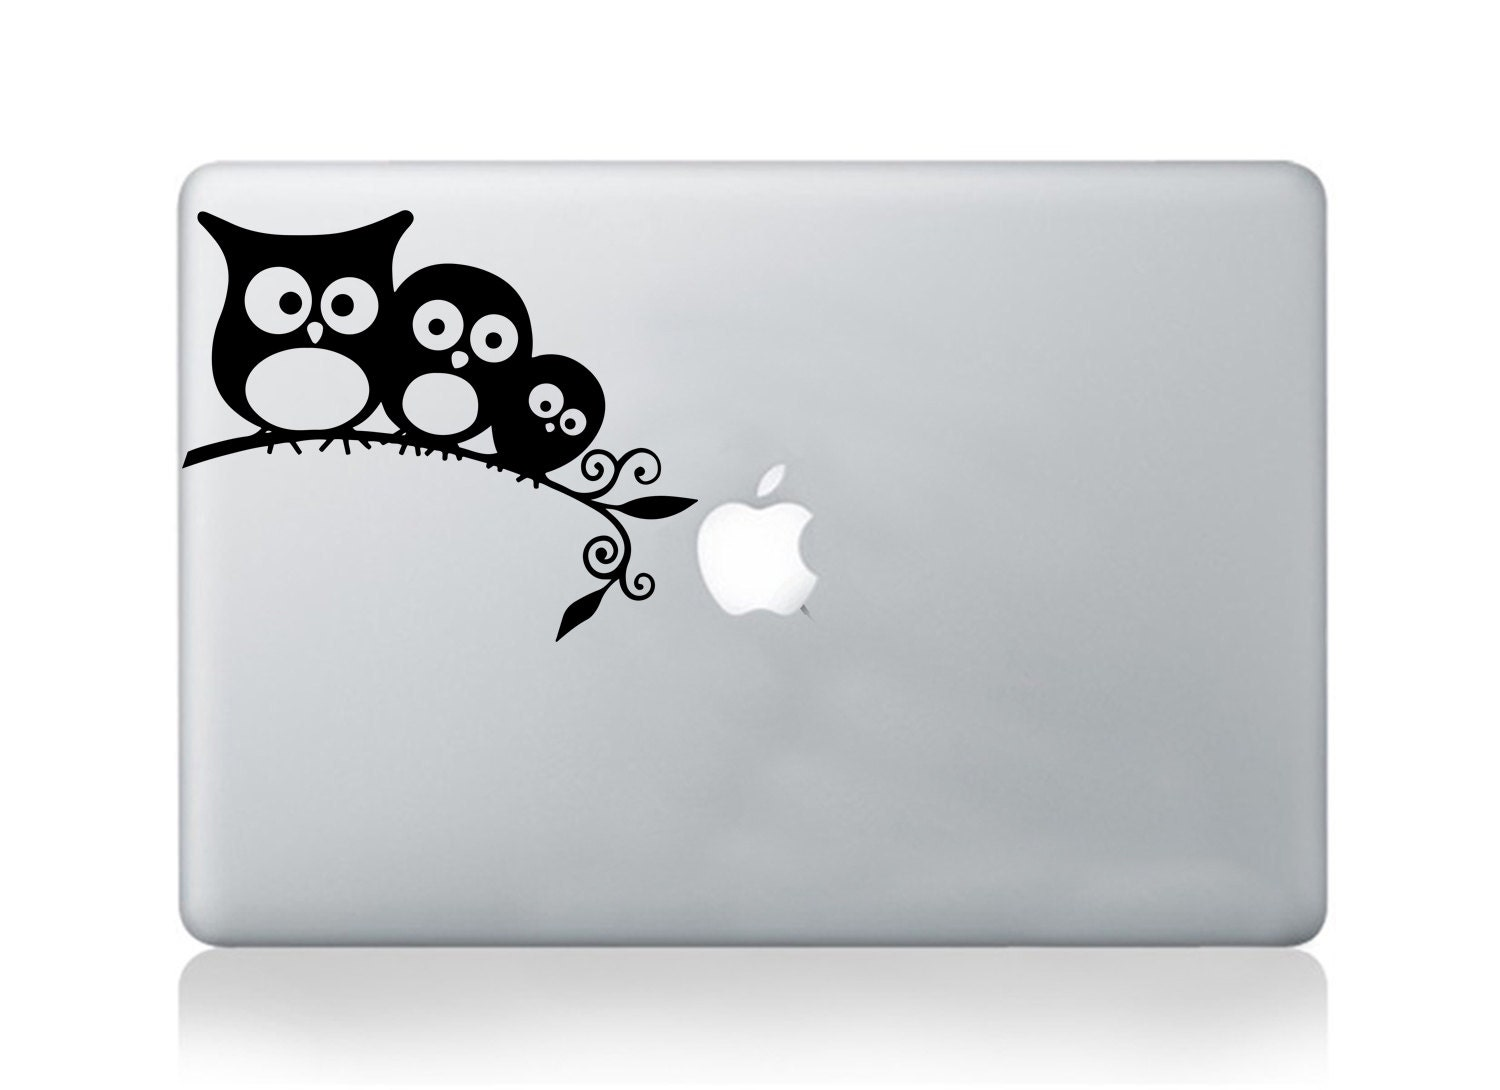 Macbook pro air cute owl vinyl sticker inspirational bird decals mural transfer graphic laptop notebook skin Asus HP Toshiba Dell decal